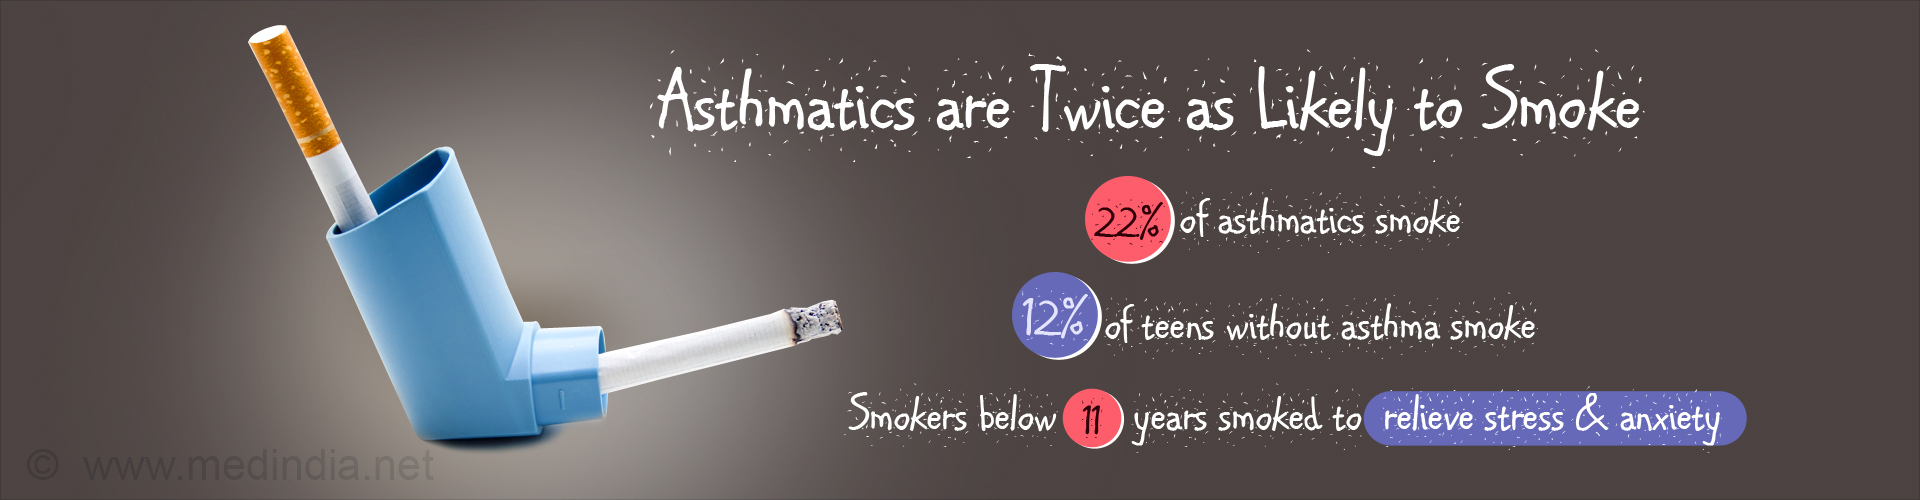 Asthmatics are Twice as Likely to Smoke